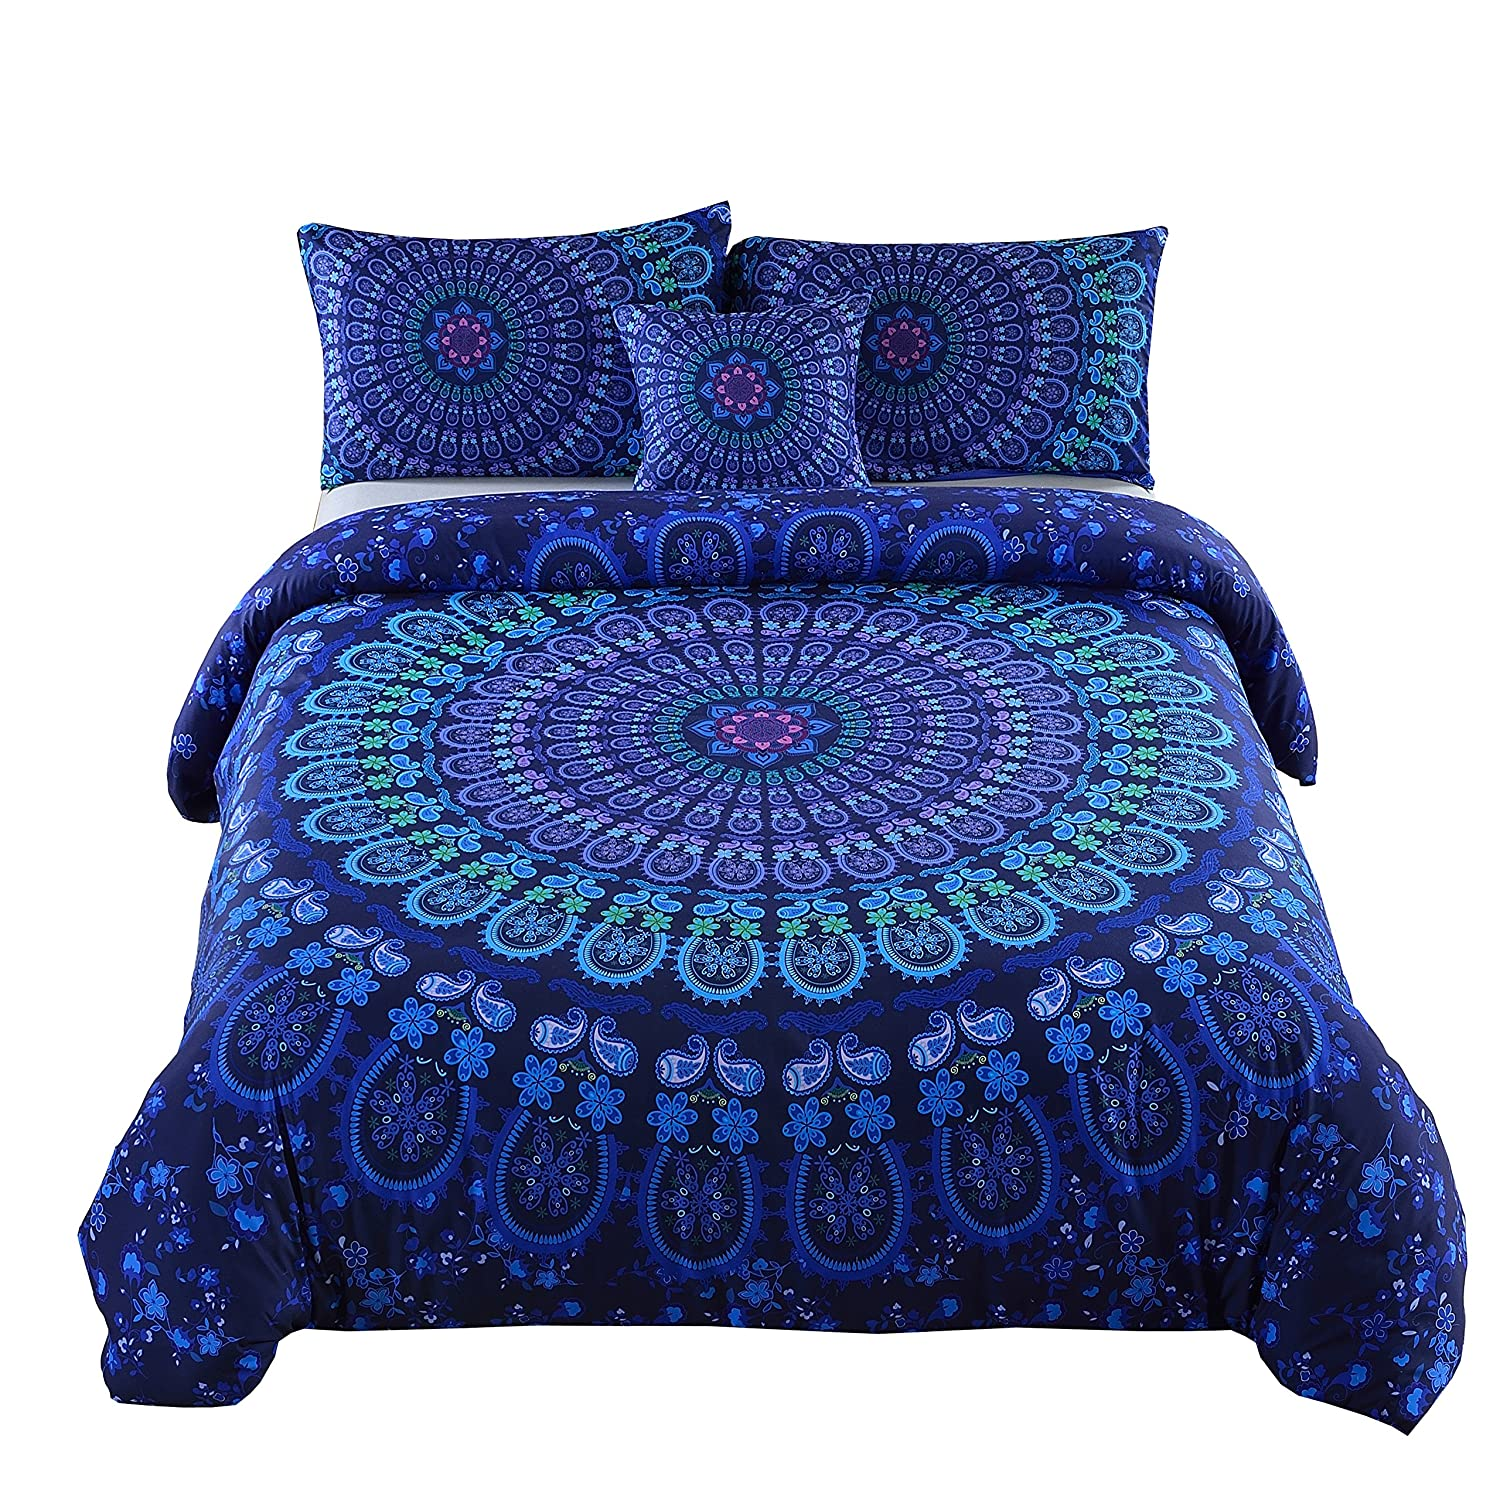 MEILA Duvet Cover Set Luxury Soft Microfiber Bedding Sets Bohemian Mandala Pattern Bedclothes, King(104inx 90in), 4 Pieces (1 Duvet Cover+ 2 Pillowcase+ 1 Throw Pillow Case)